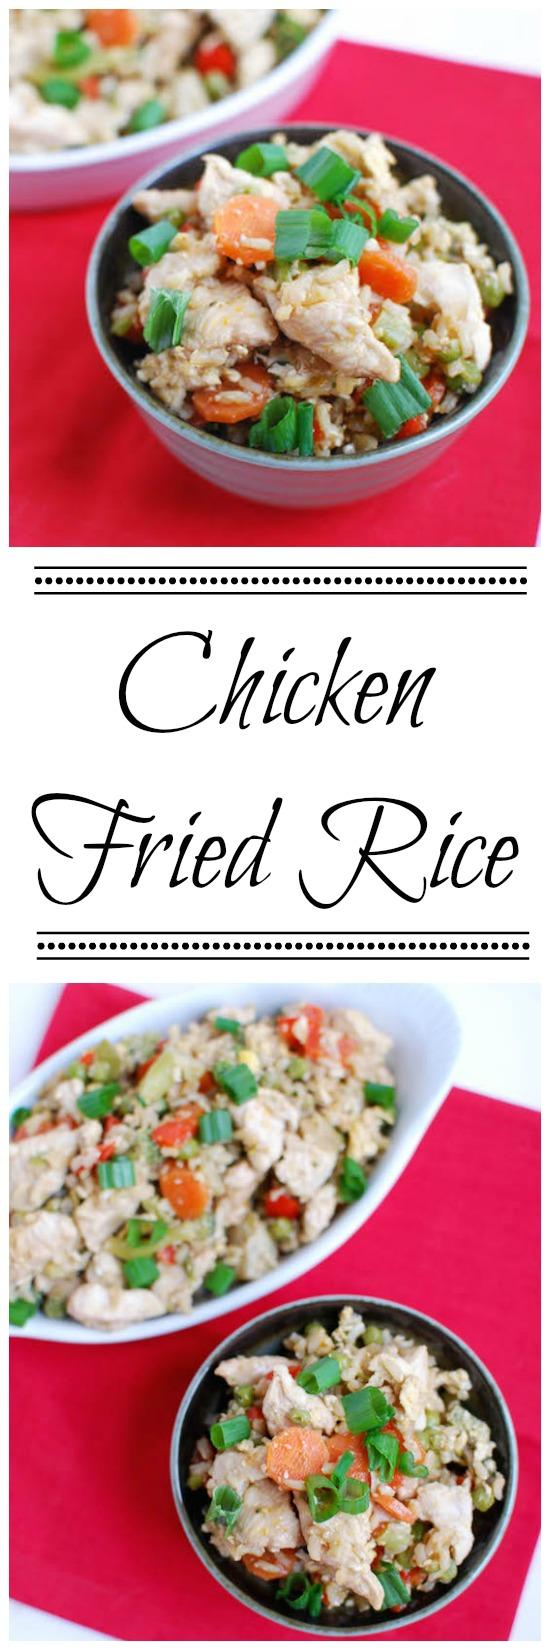 This Healthy Chicken Fried Rice is perfect for nights when you want a quick, easy dinner that's both simple and nutritious!